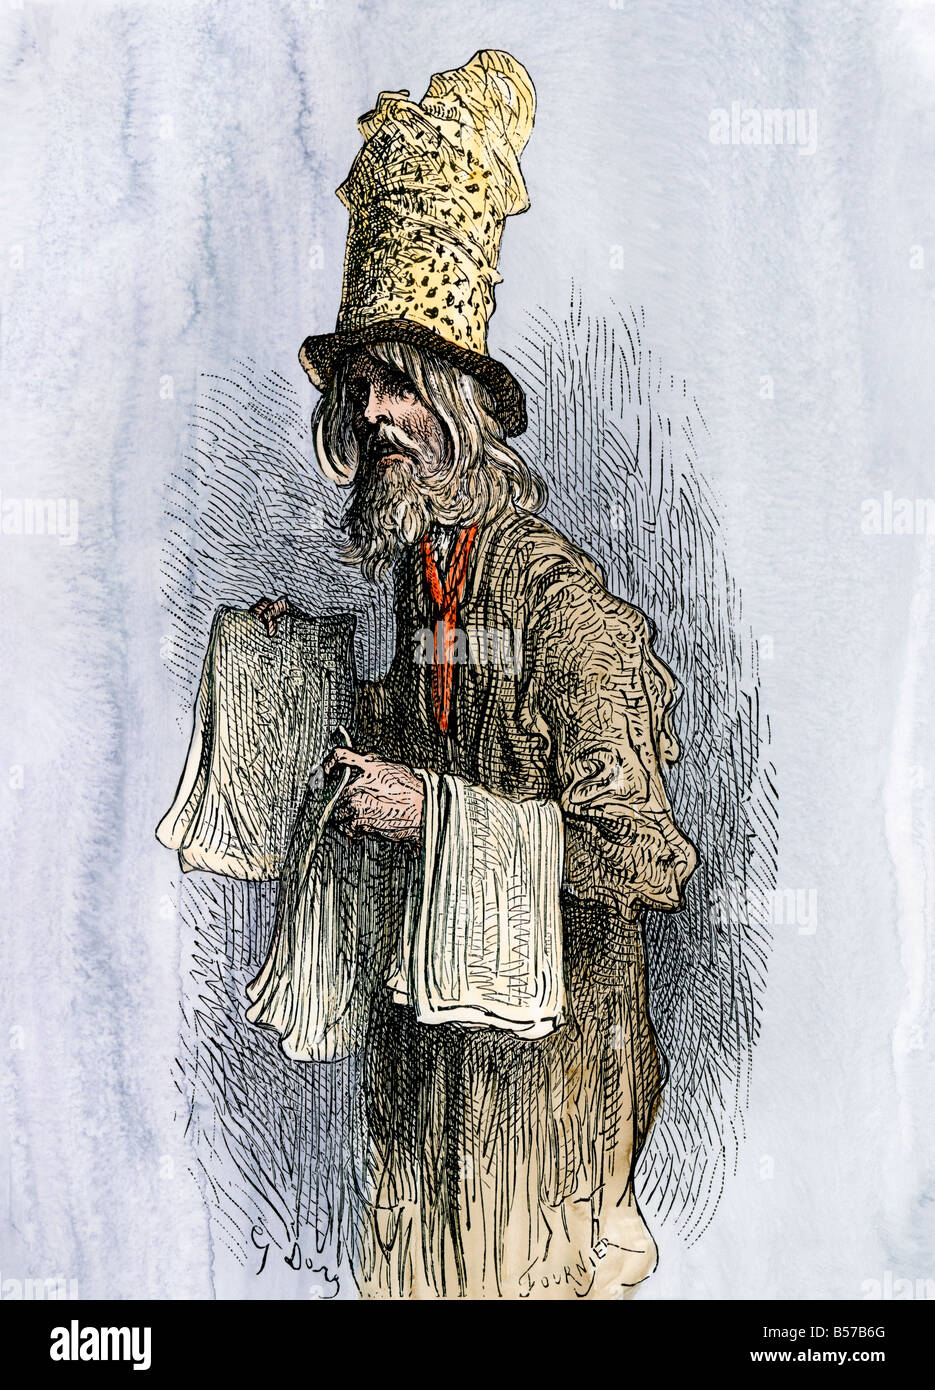 Peddler on a street in London 1800s. Hand-colored woodcut of a Gustave Dore illustration - Stock Image